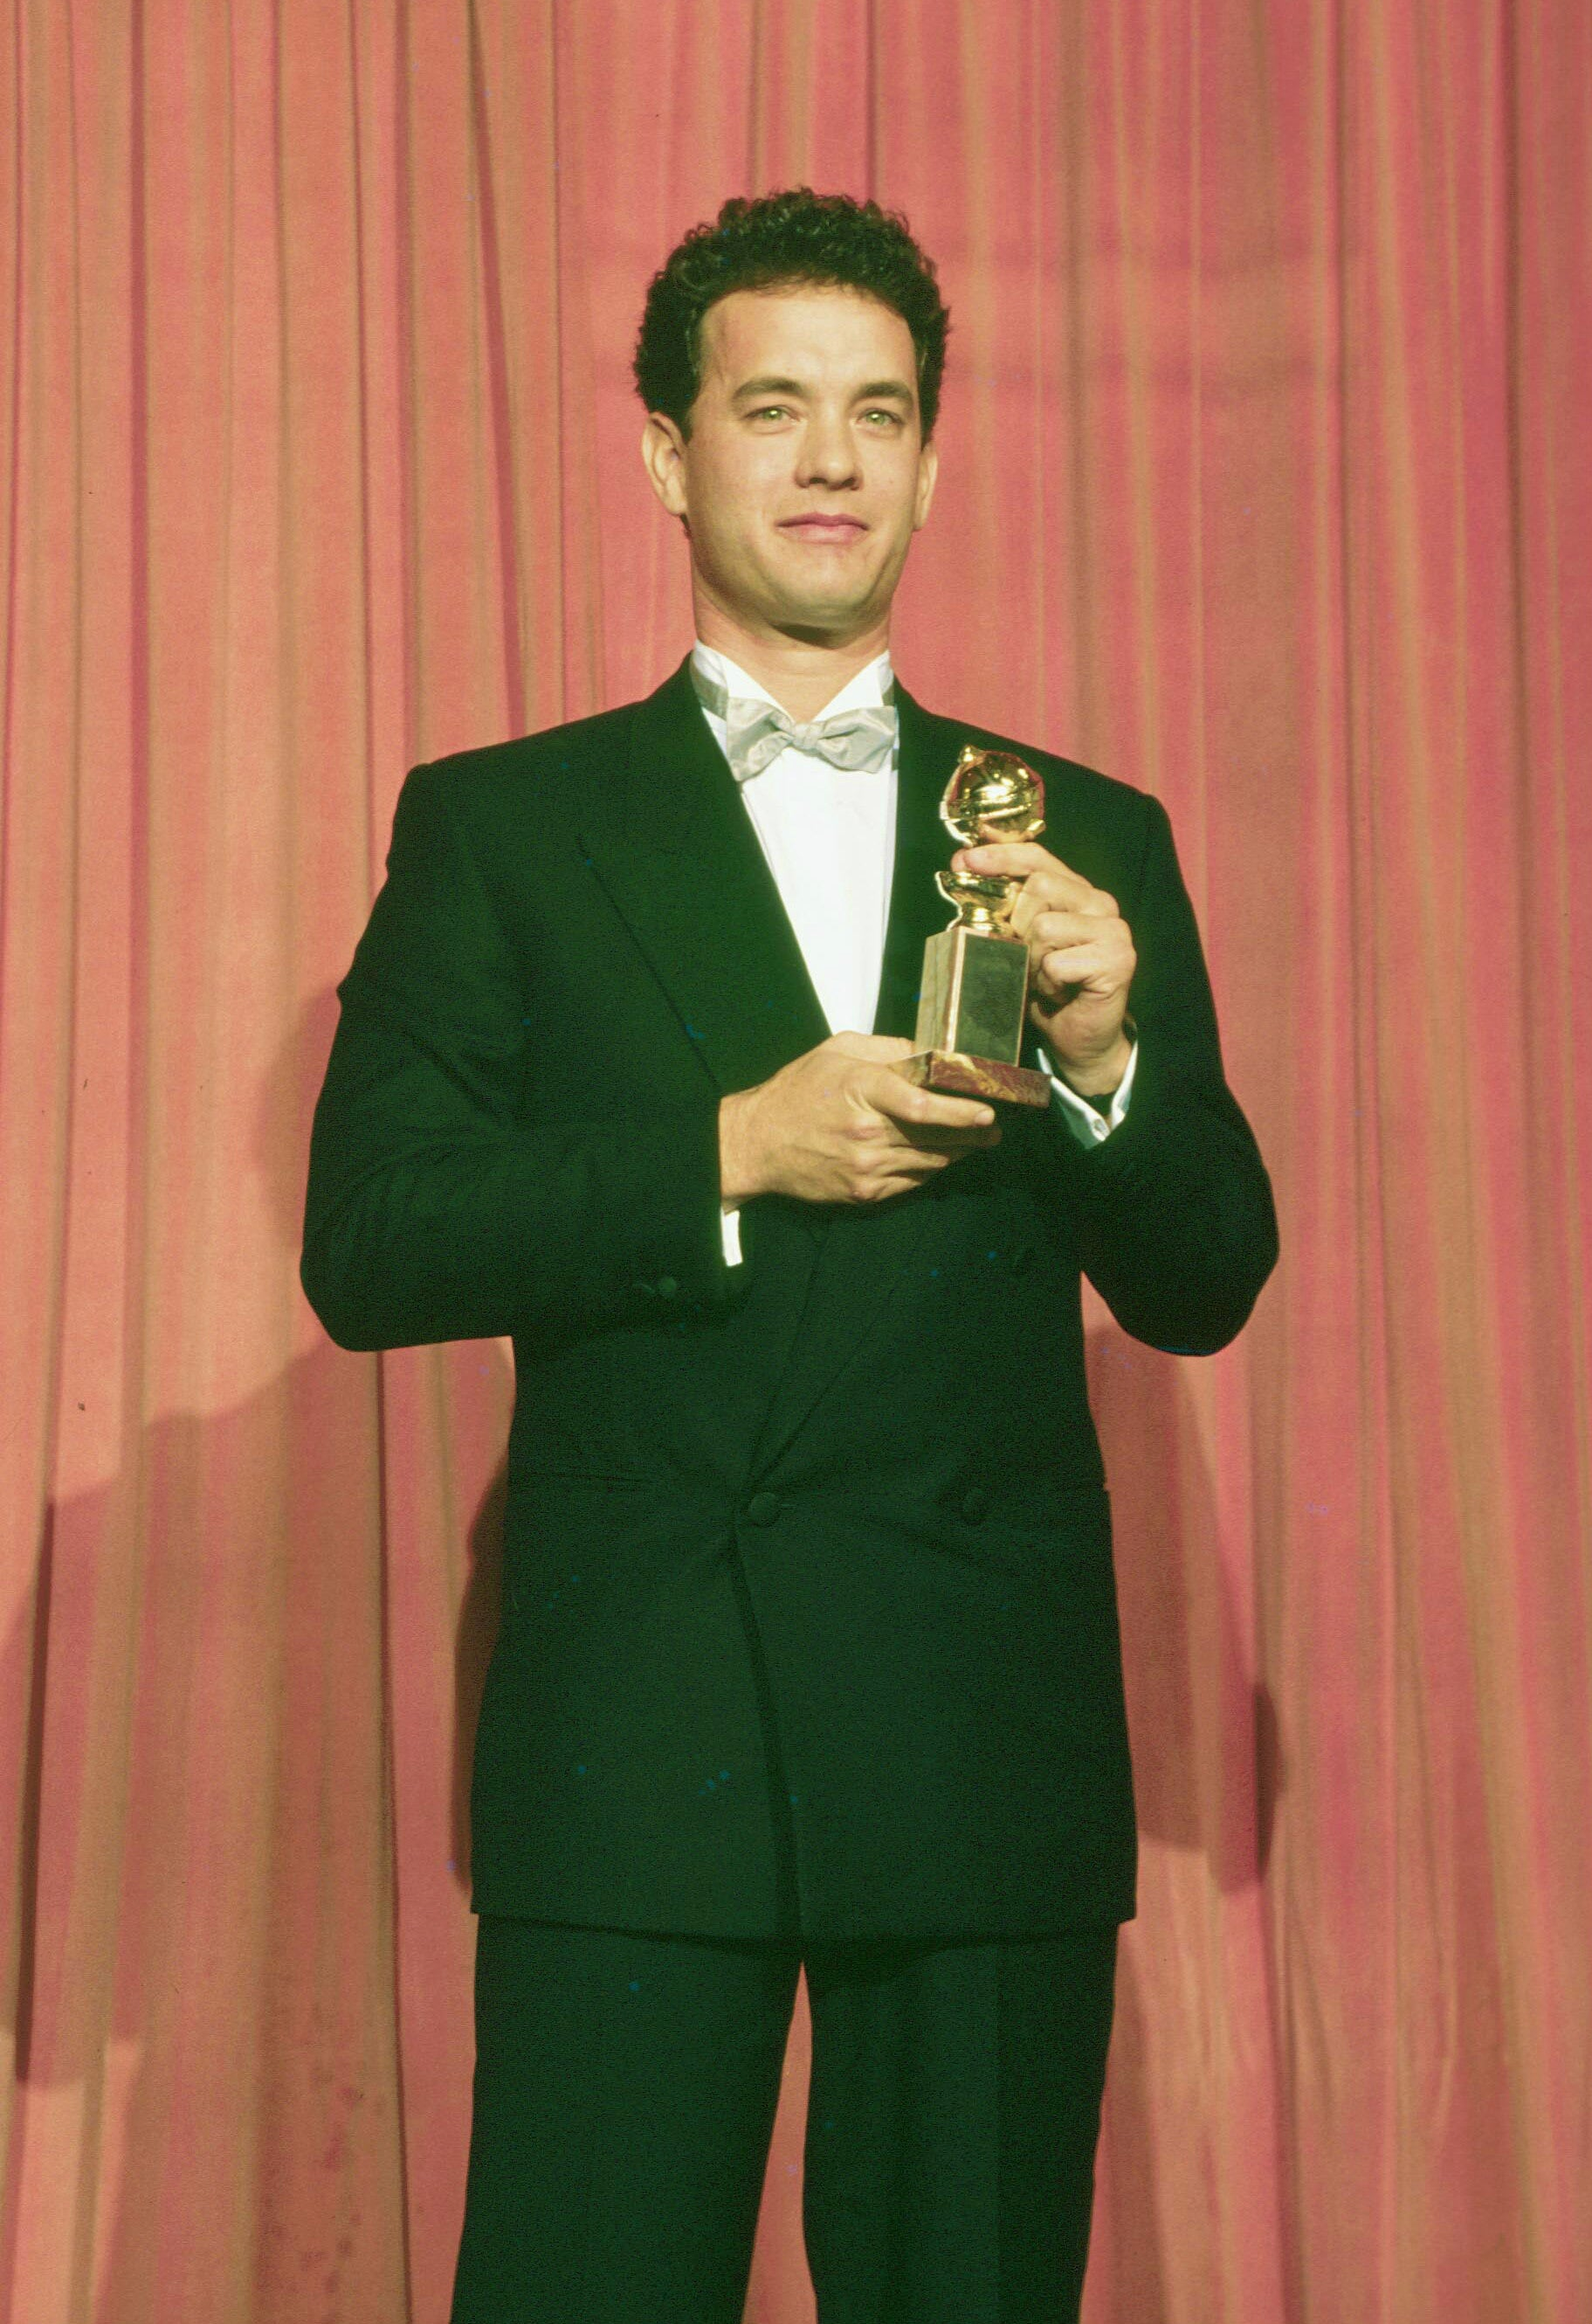 Flashback: Tom Hanks Collects His First Golden Globe, 1989 ...